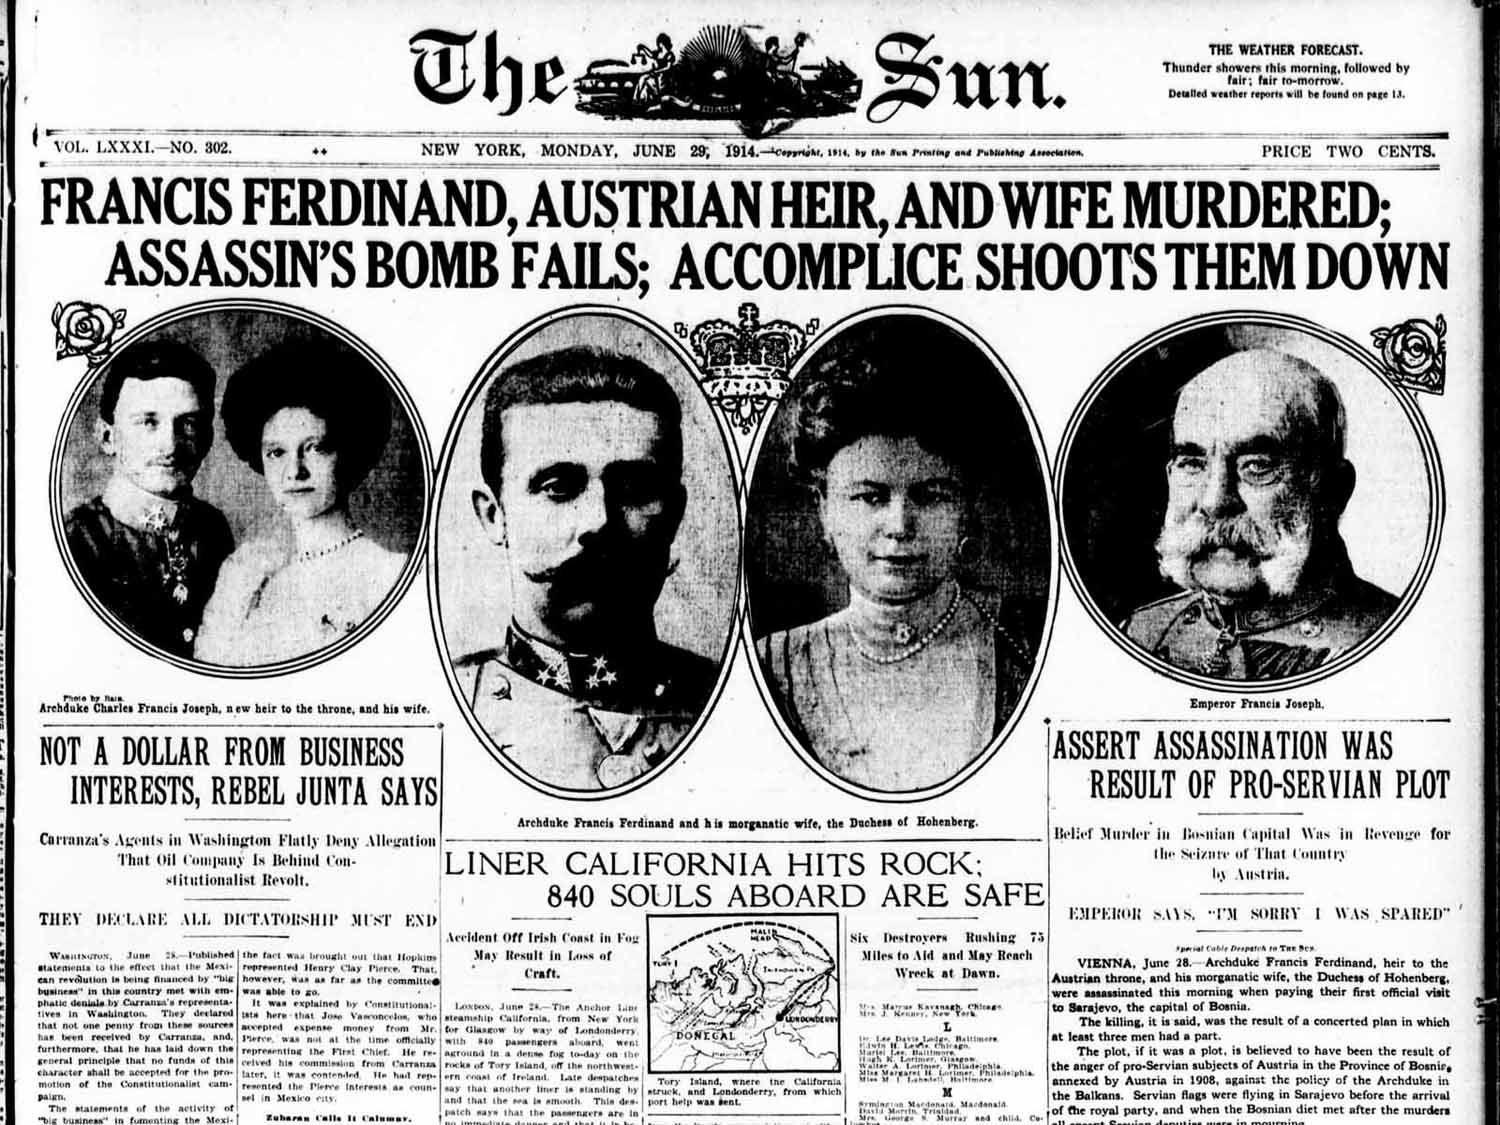 diary entry assassination of the archduke First world warcom - a multimedia history of world war one first world warcom a multimedia archduke franz ferdinand, was assassinated in sarajevo, setting off the train of diplomatic events that led to the outbreak of war in late july 1914.